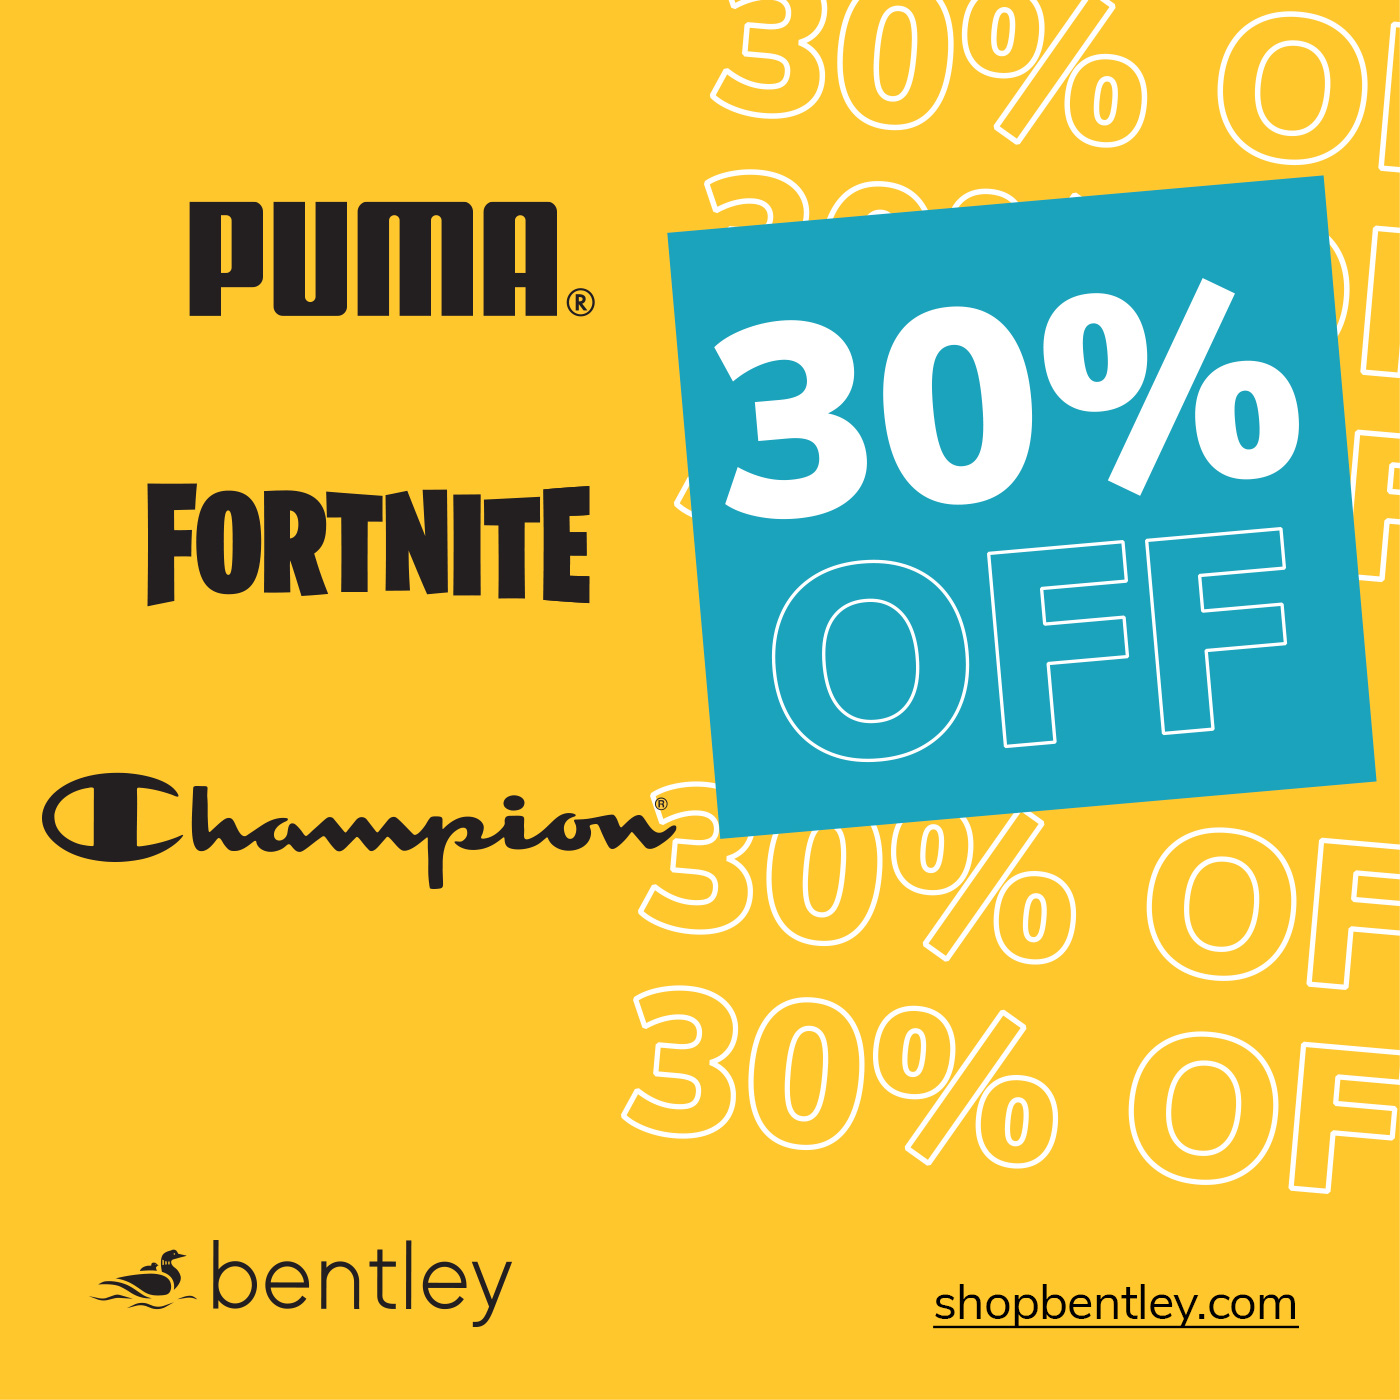 Promotional poster for Bentley offering 30% select items